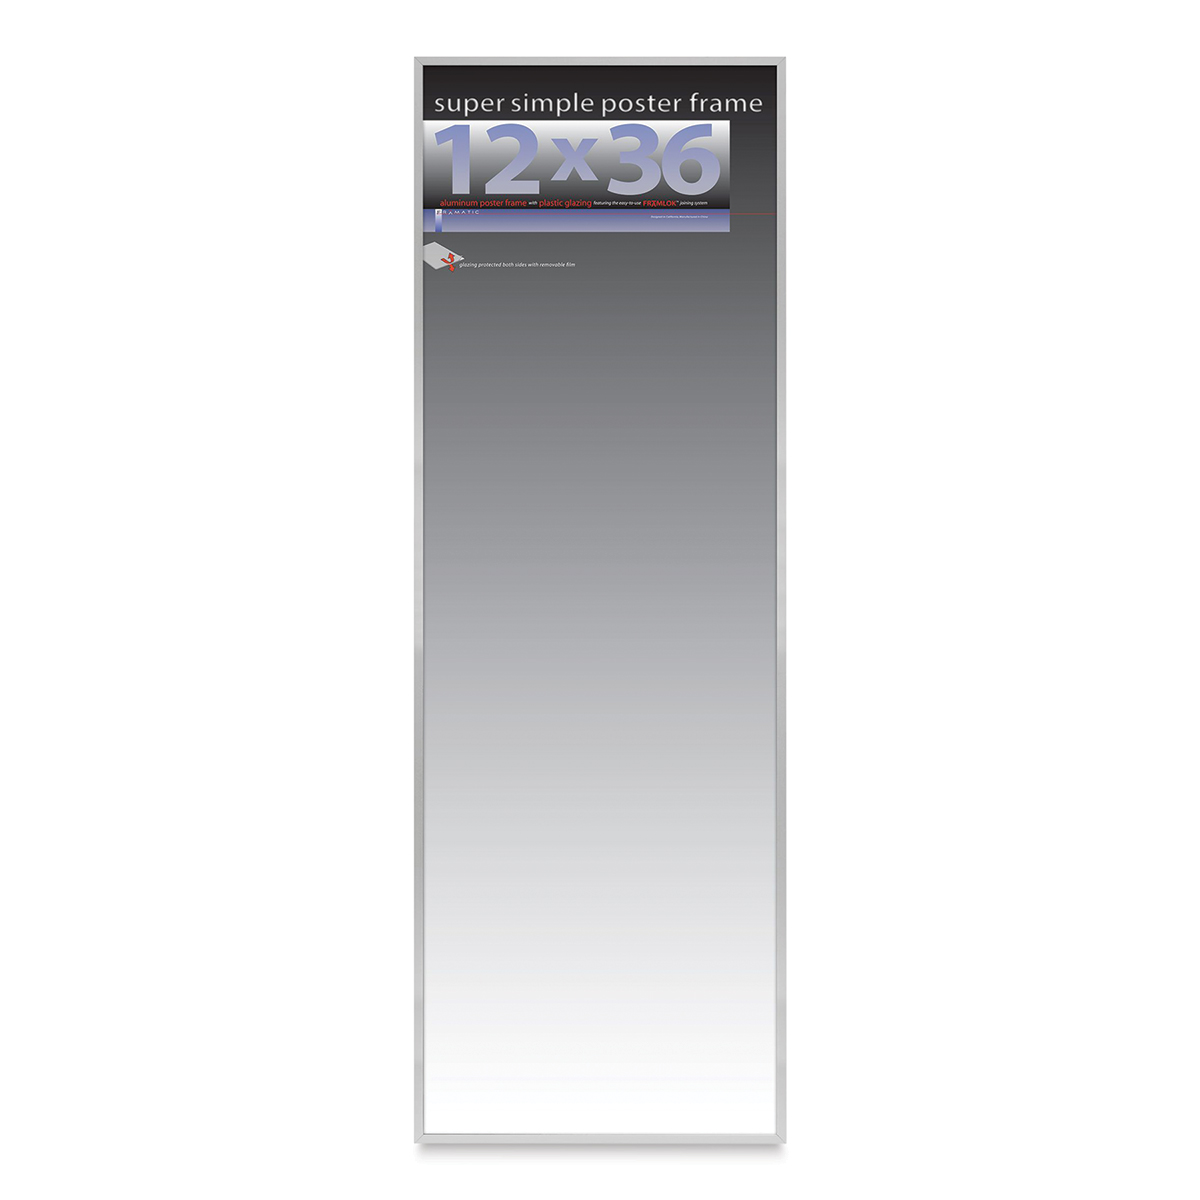 Framatic Super Simple Poster Frame - Silver, 12 x 36